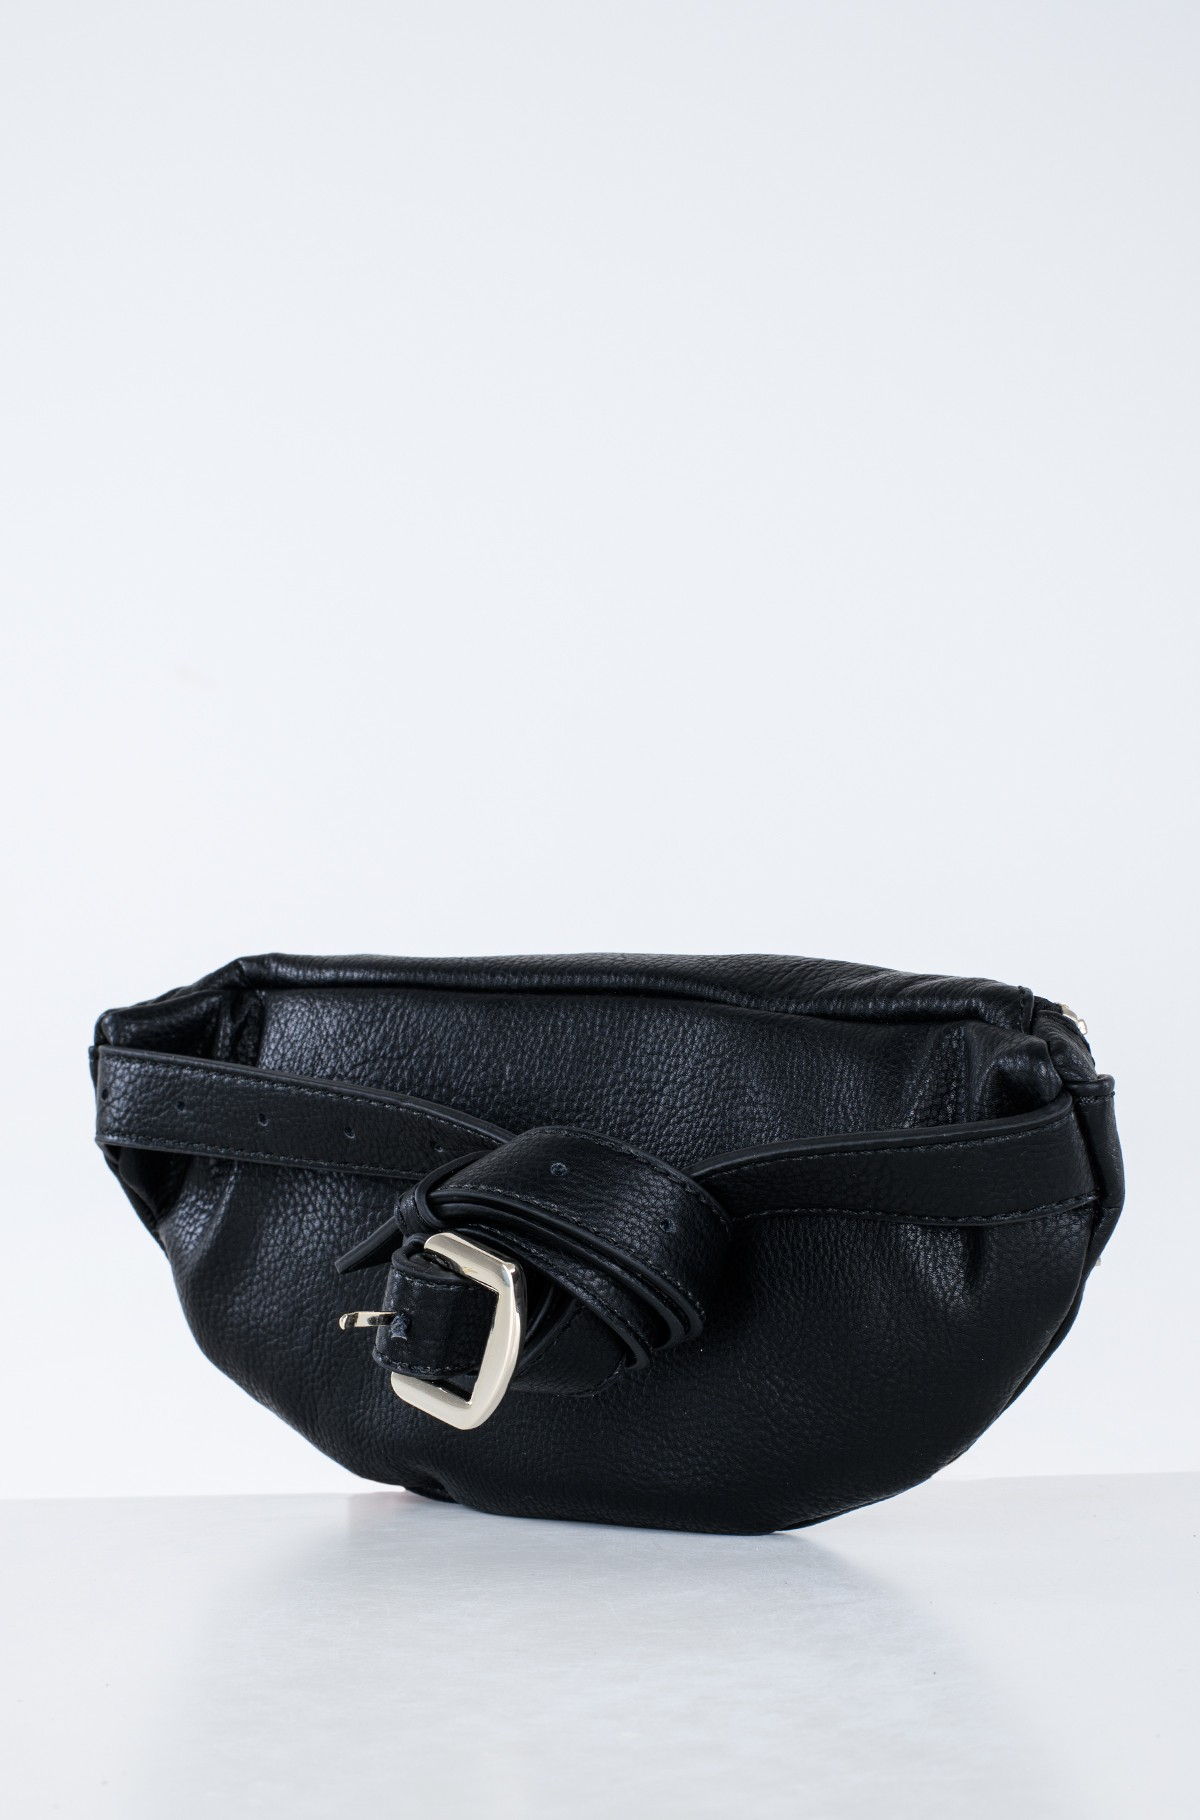 Bum bag HWVS69 94800-full-3